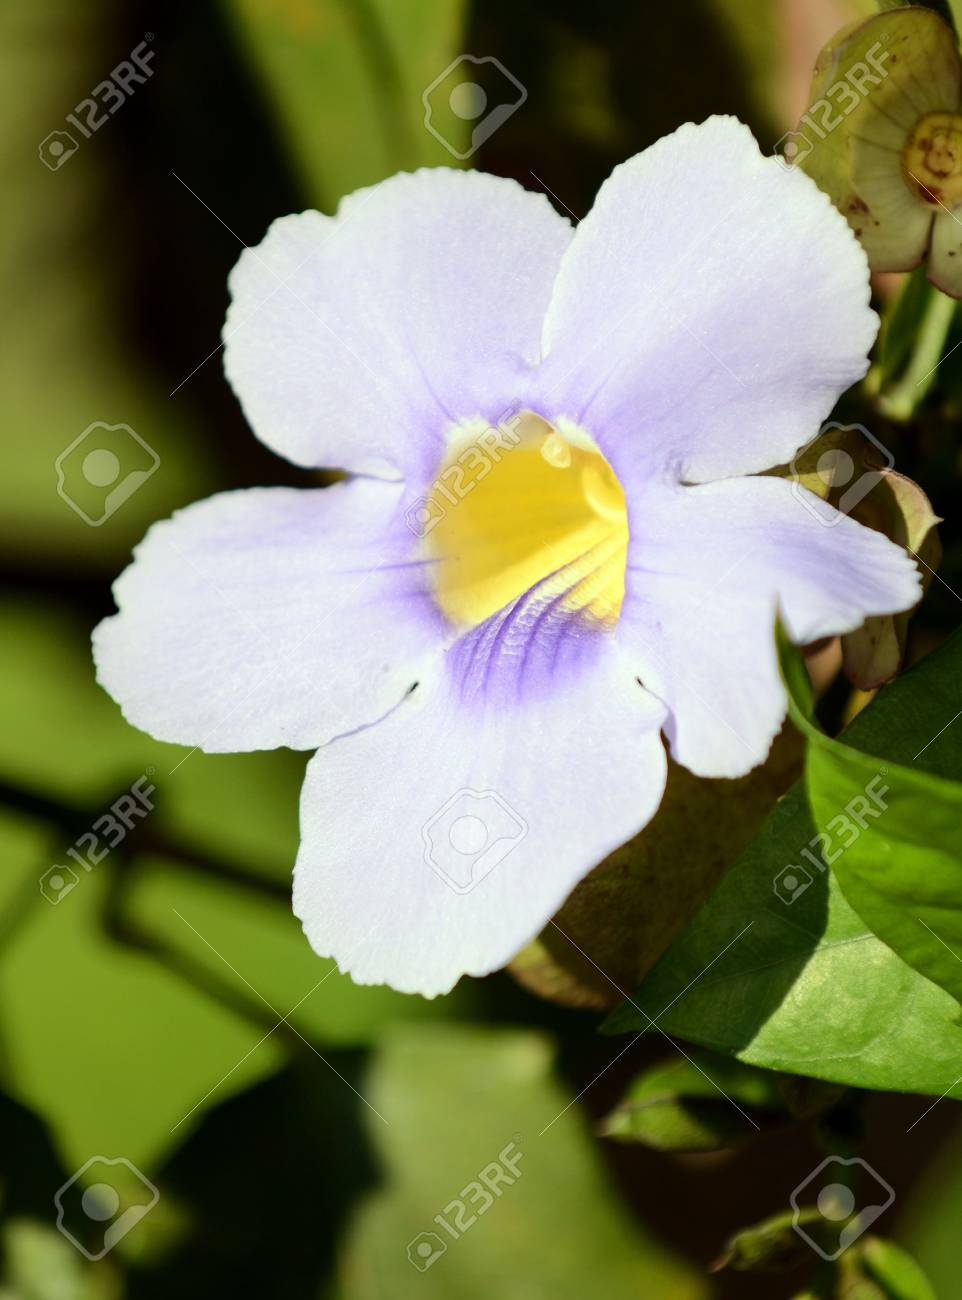 A Beautiful White Flower In Bloom In A Tropical Destination Stock